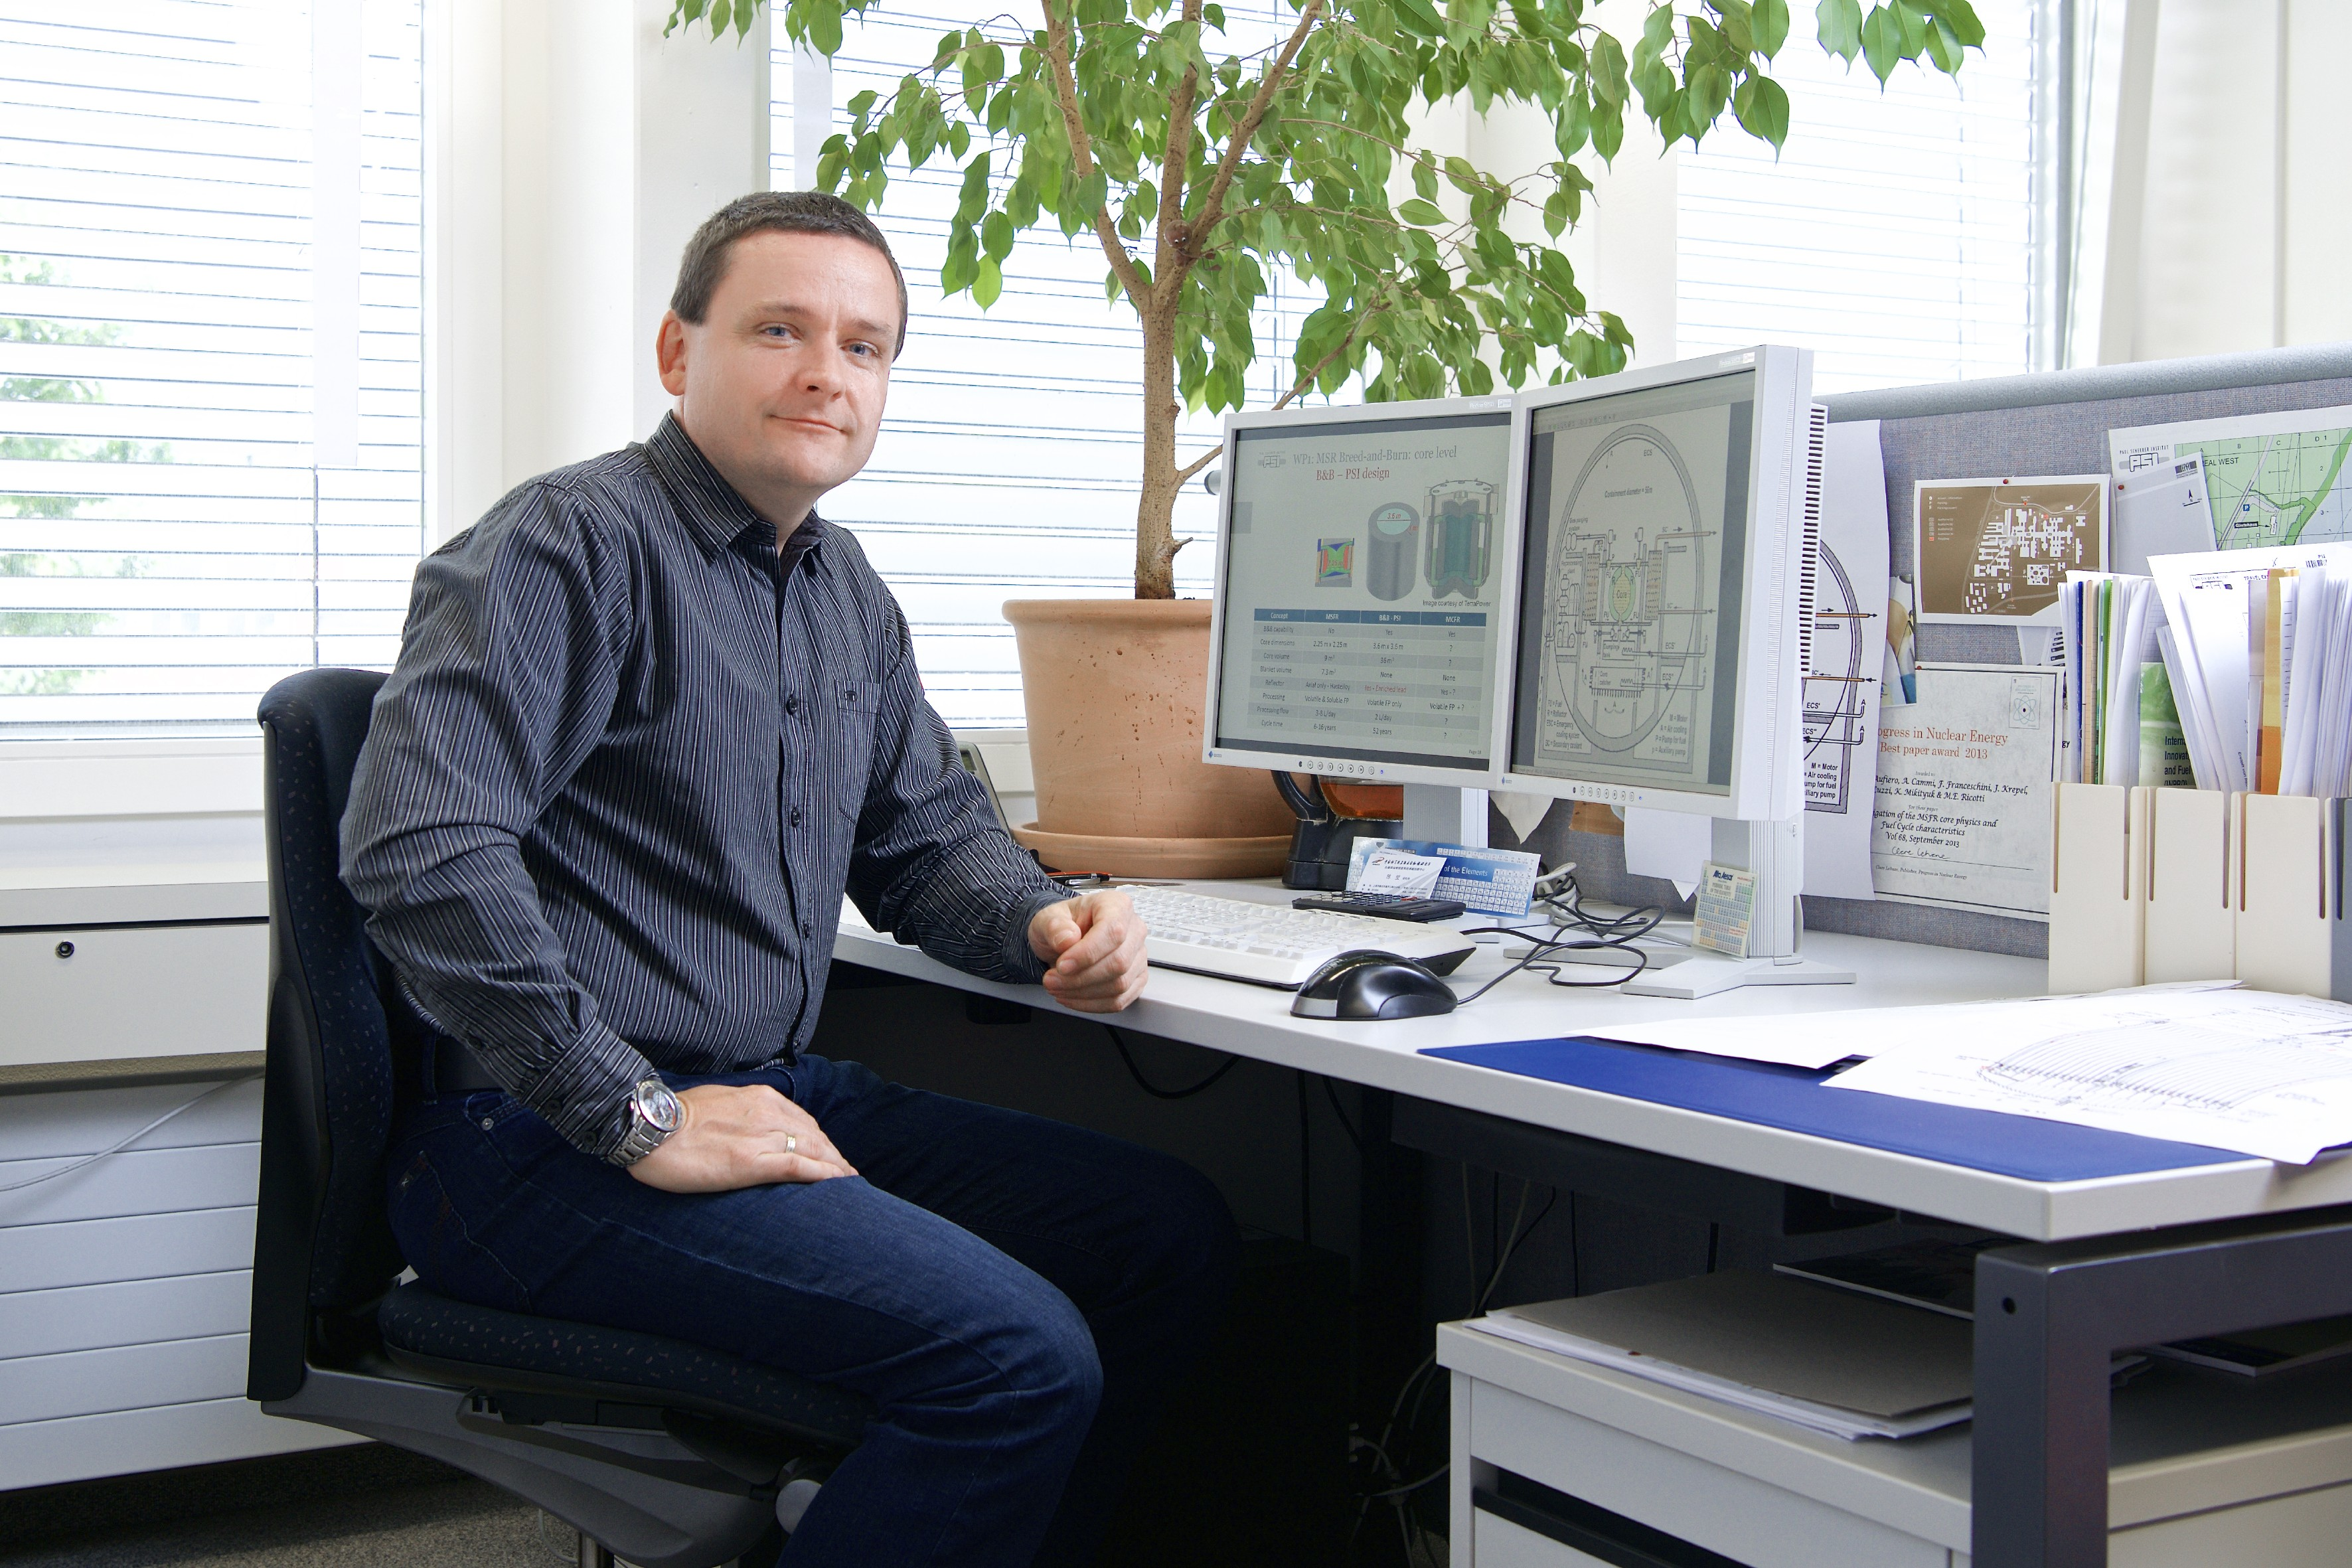 Jiri Krepel, researcher in the group Fast reactors at PSI. (Photo: Paul Scherrer Institute/Markus Fischer)